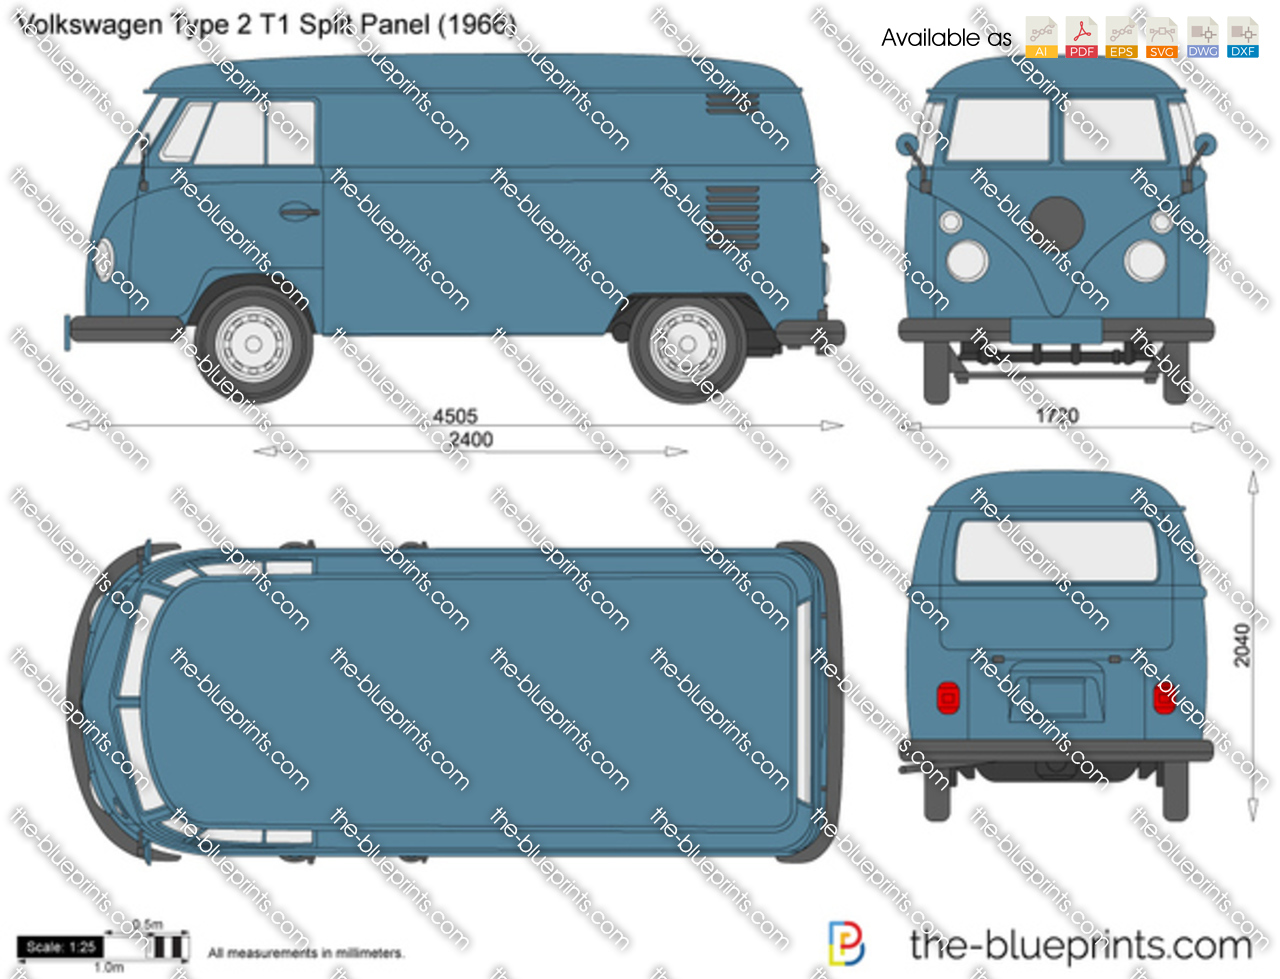 Volkswagen Type 2 T1 Split Panel 1965